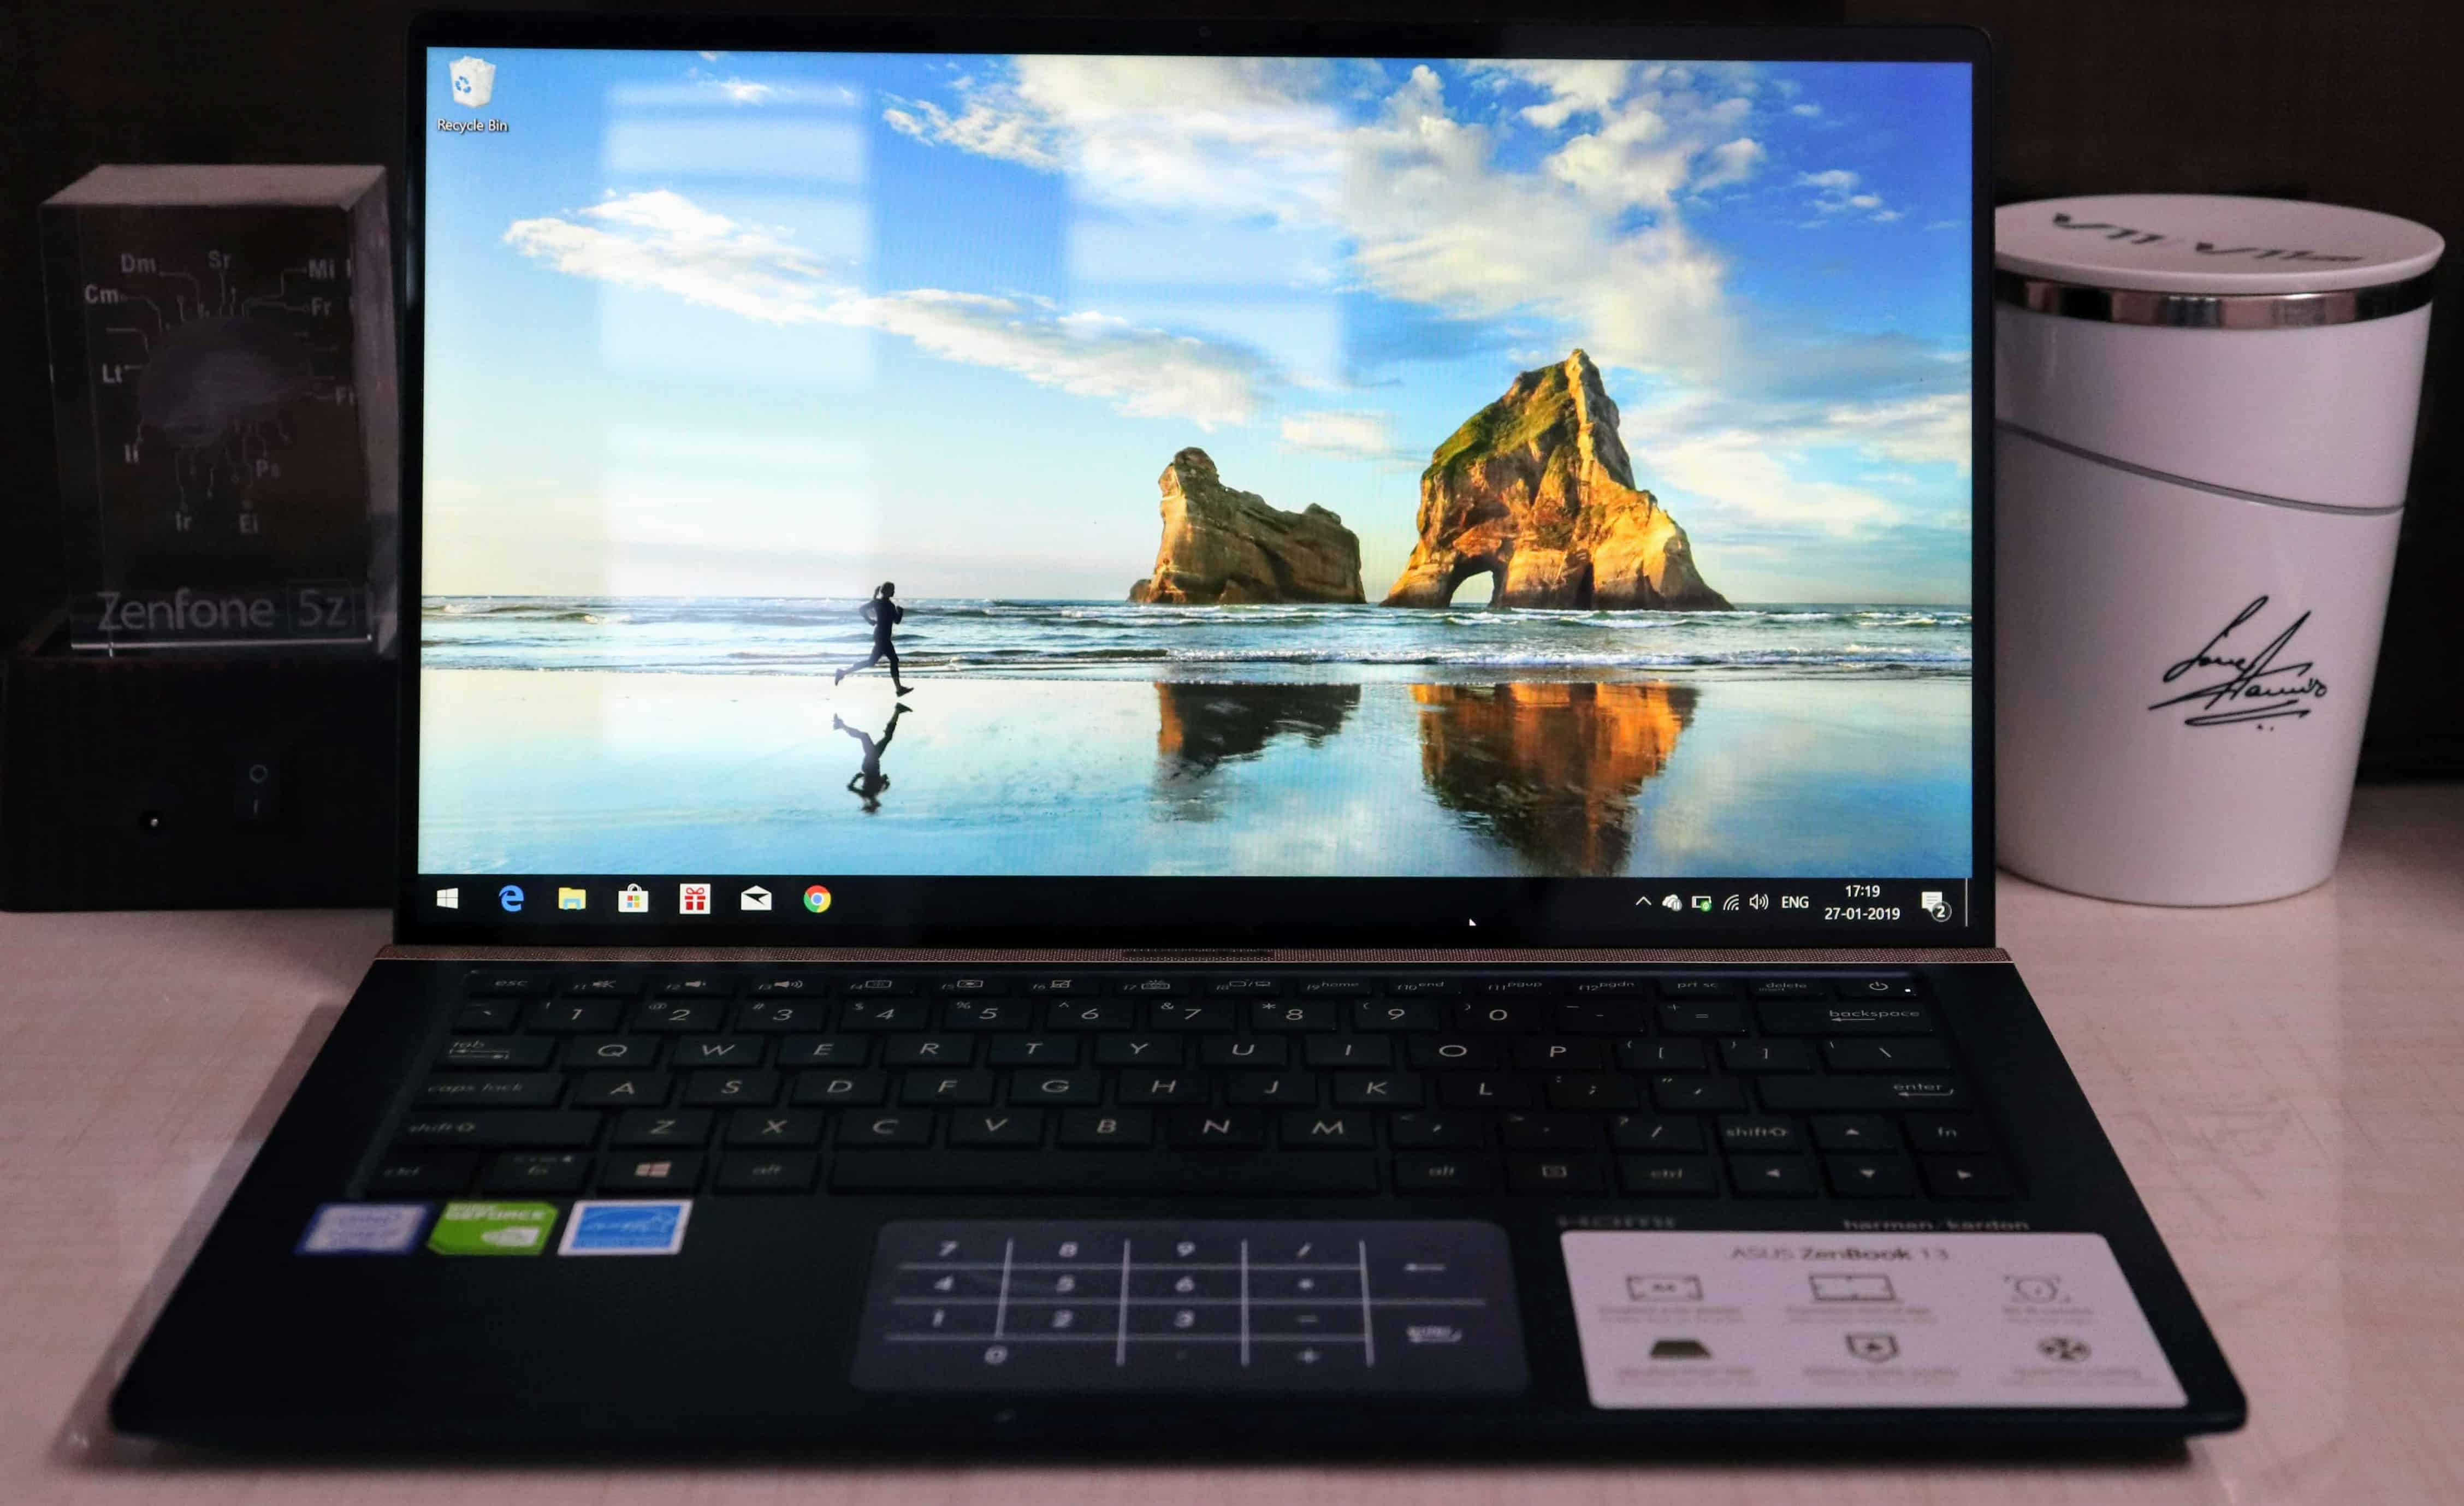 Asus Zenbook 13 UX333FN Review - The Most Compact 13-inch laptop I've used! - 1